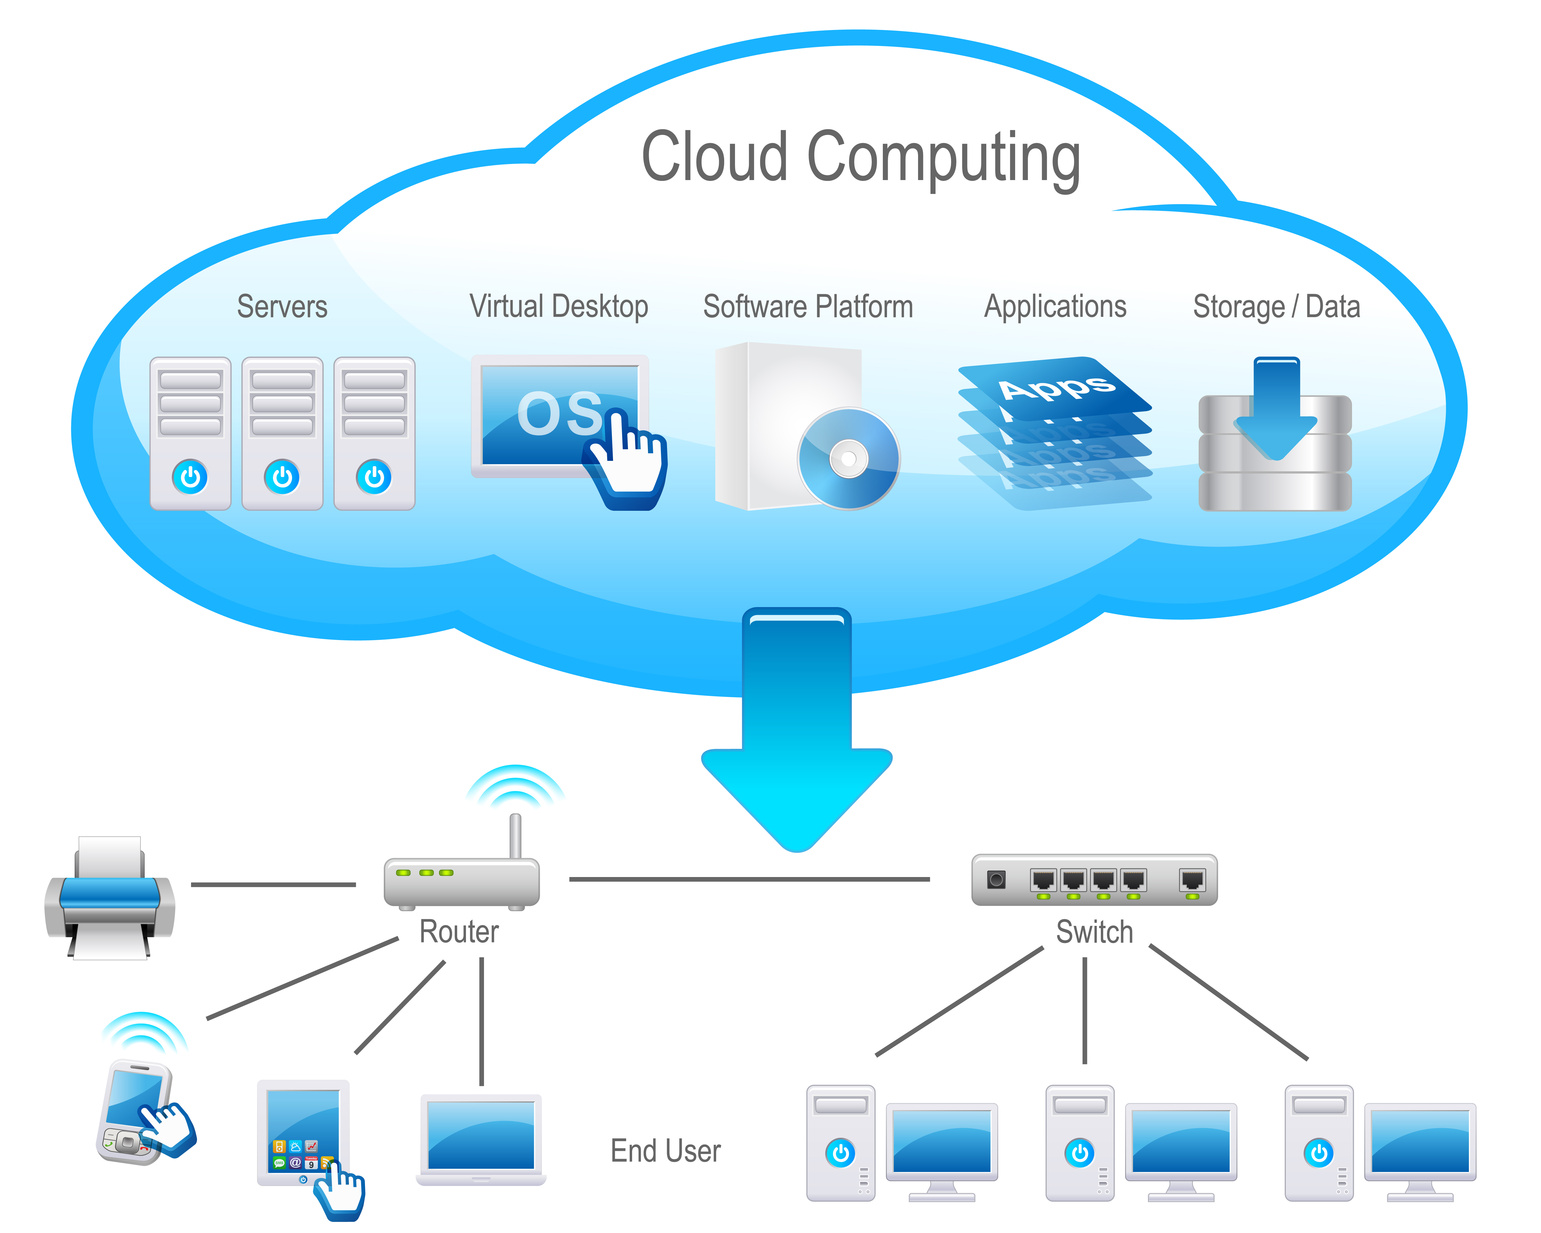 What is the role of CLOUD COMPUTING in enhancing business infrastructure, virtualization and deployment2